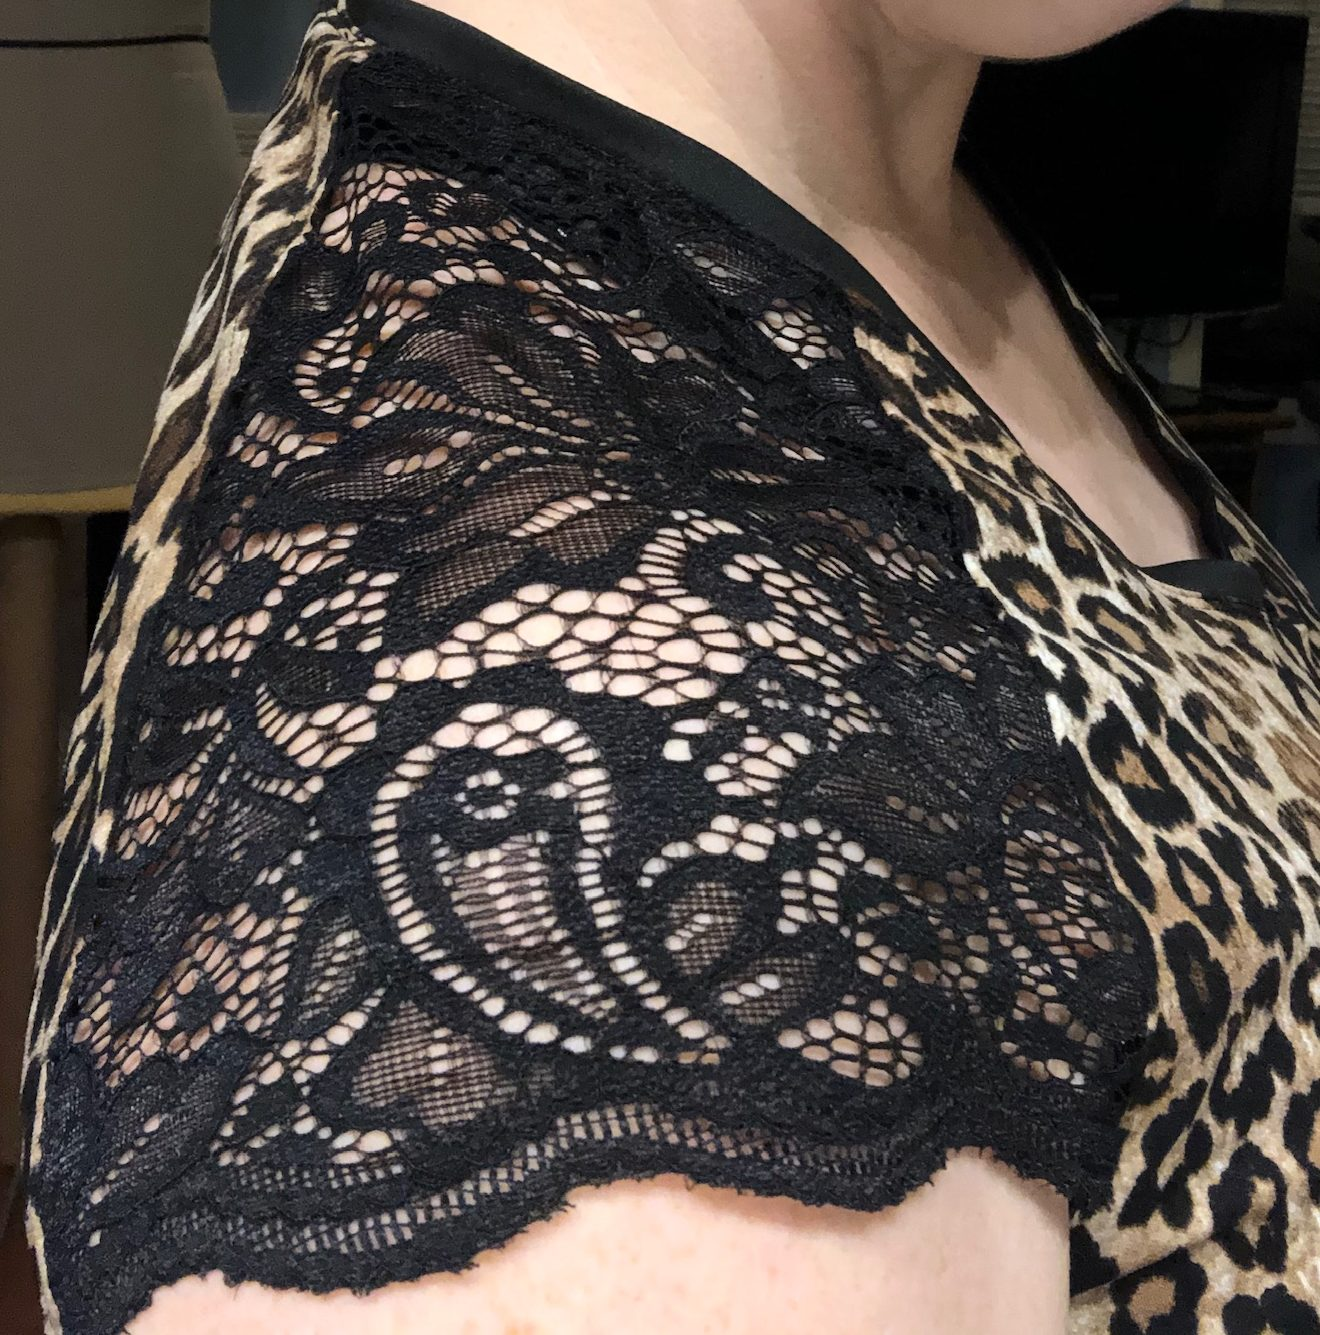 Shoulder blocking in stretch lace. I used the scalloped edge of the lace as the arm edge and it's quite nice!